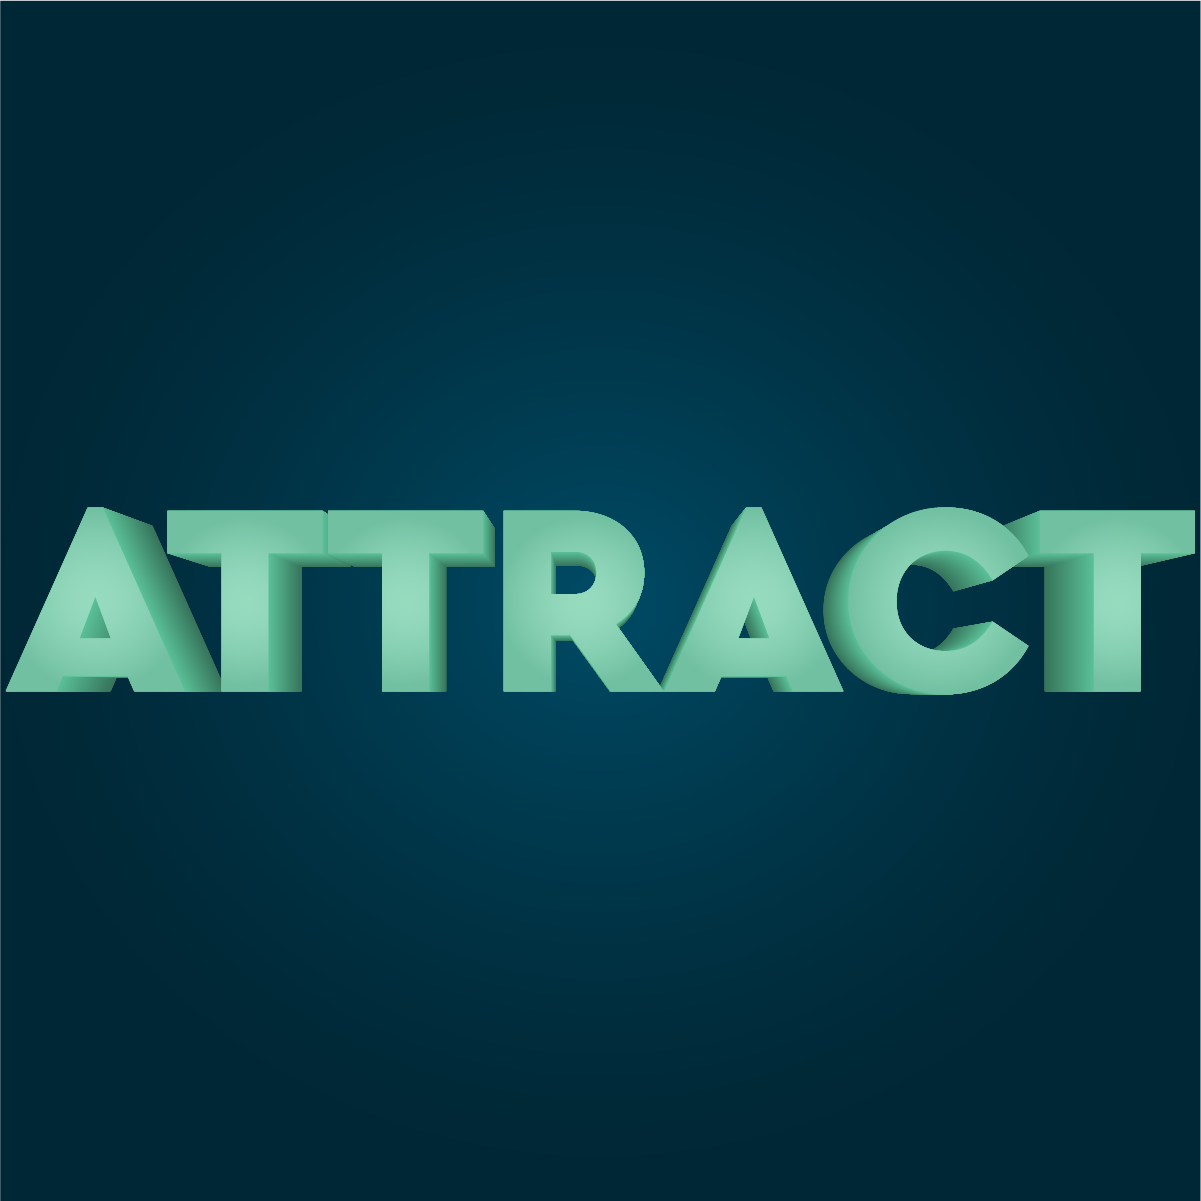 Attract image